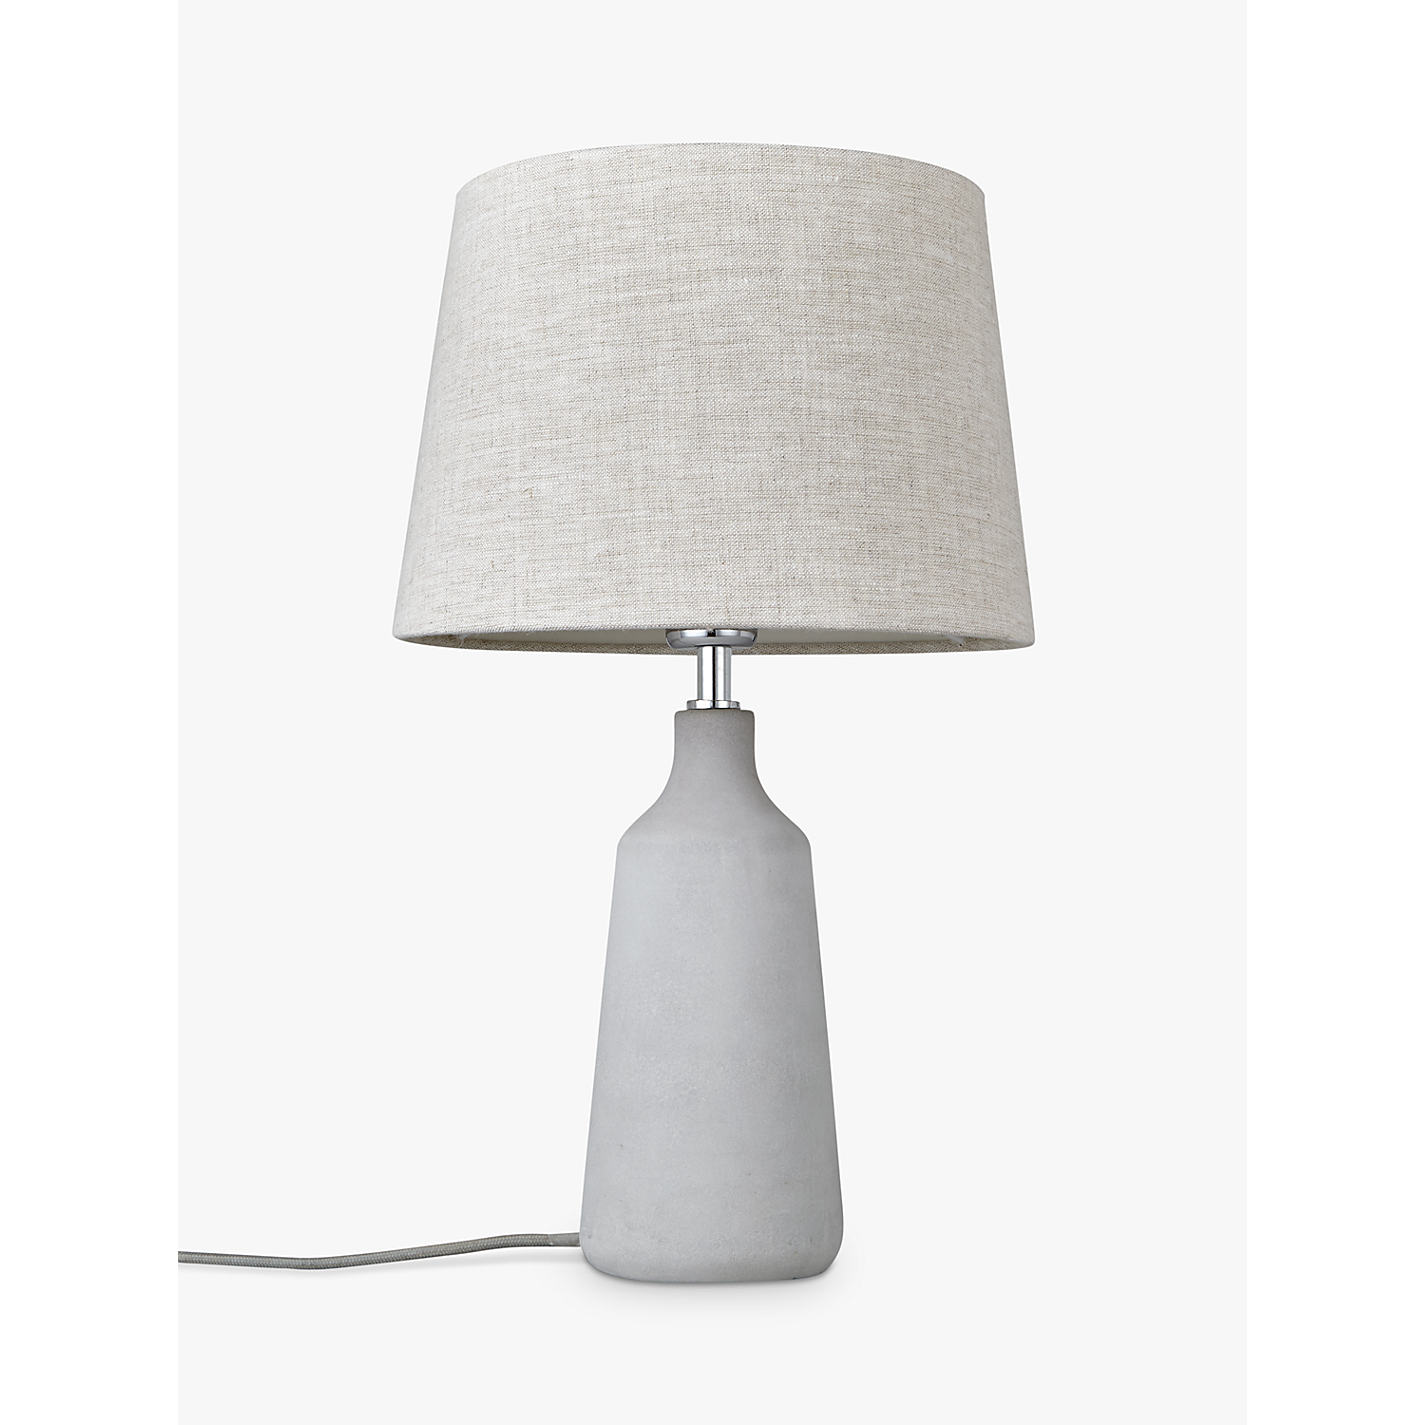 Buy john lewis croft collection linney concrete table lamp john buy john lewis croft collection linney concrete table lamp online at johnlewis geotapseo Image collections